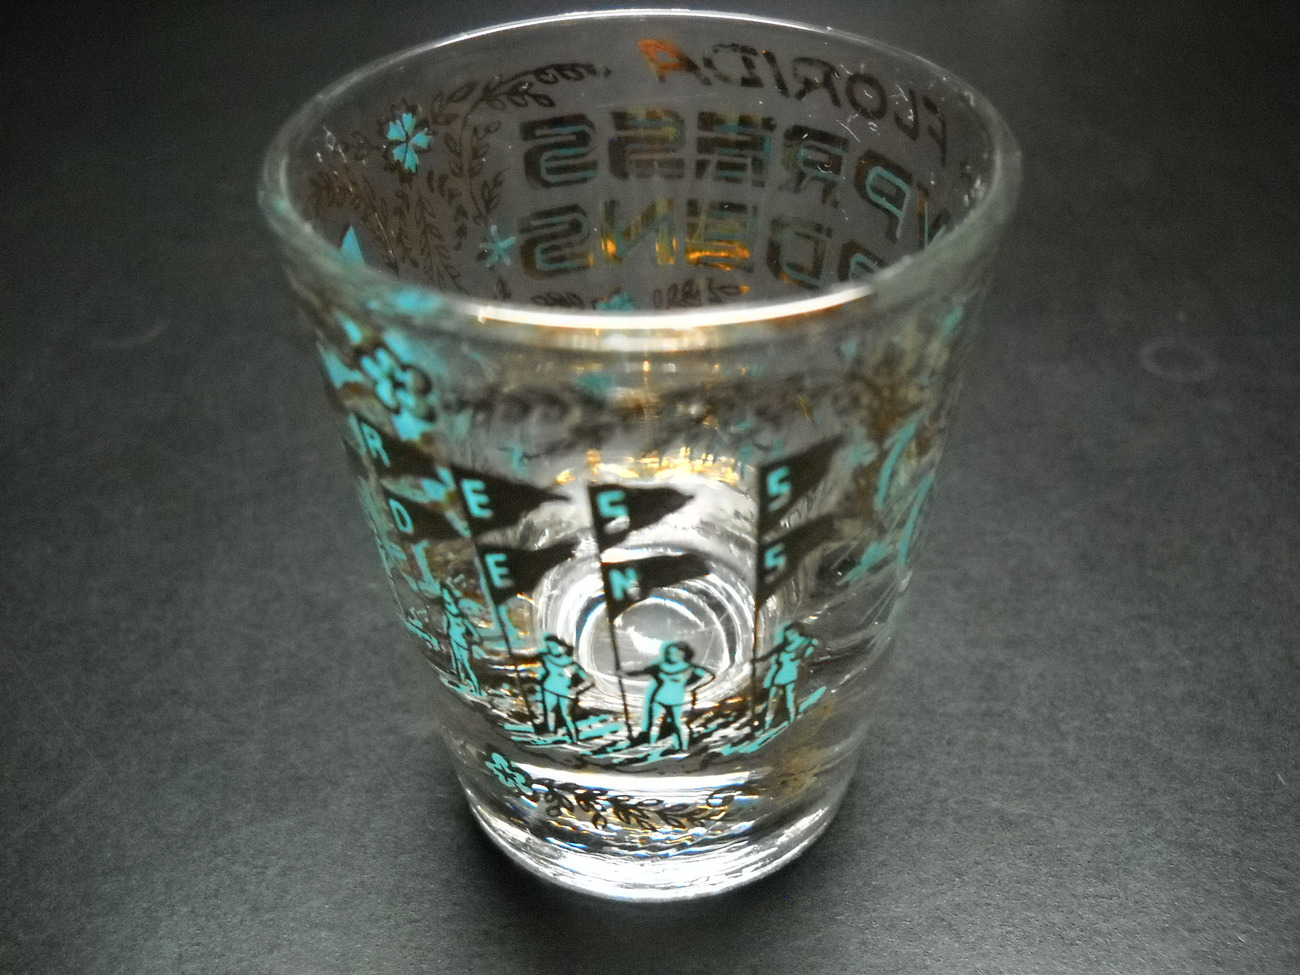 Florida Cypress Gardens Shot Glass Clear Glass with Illustrations Blues & Golds